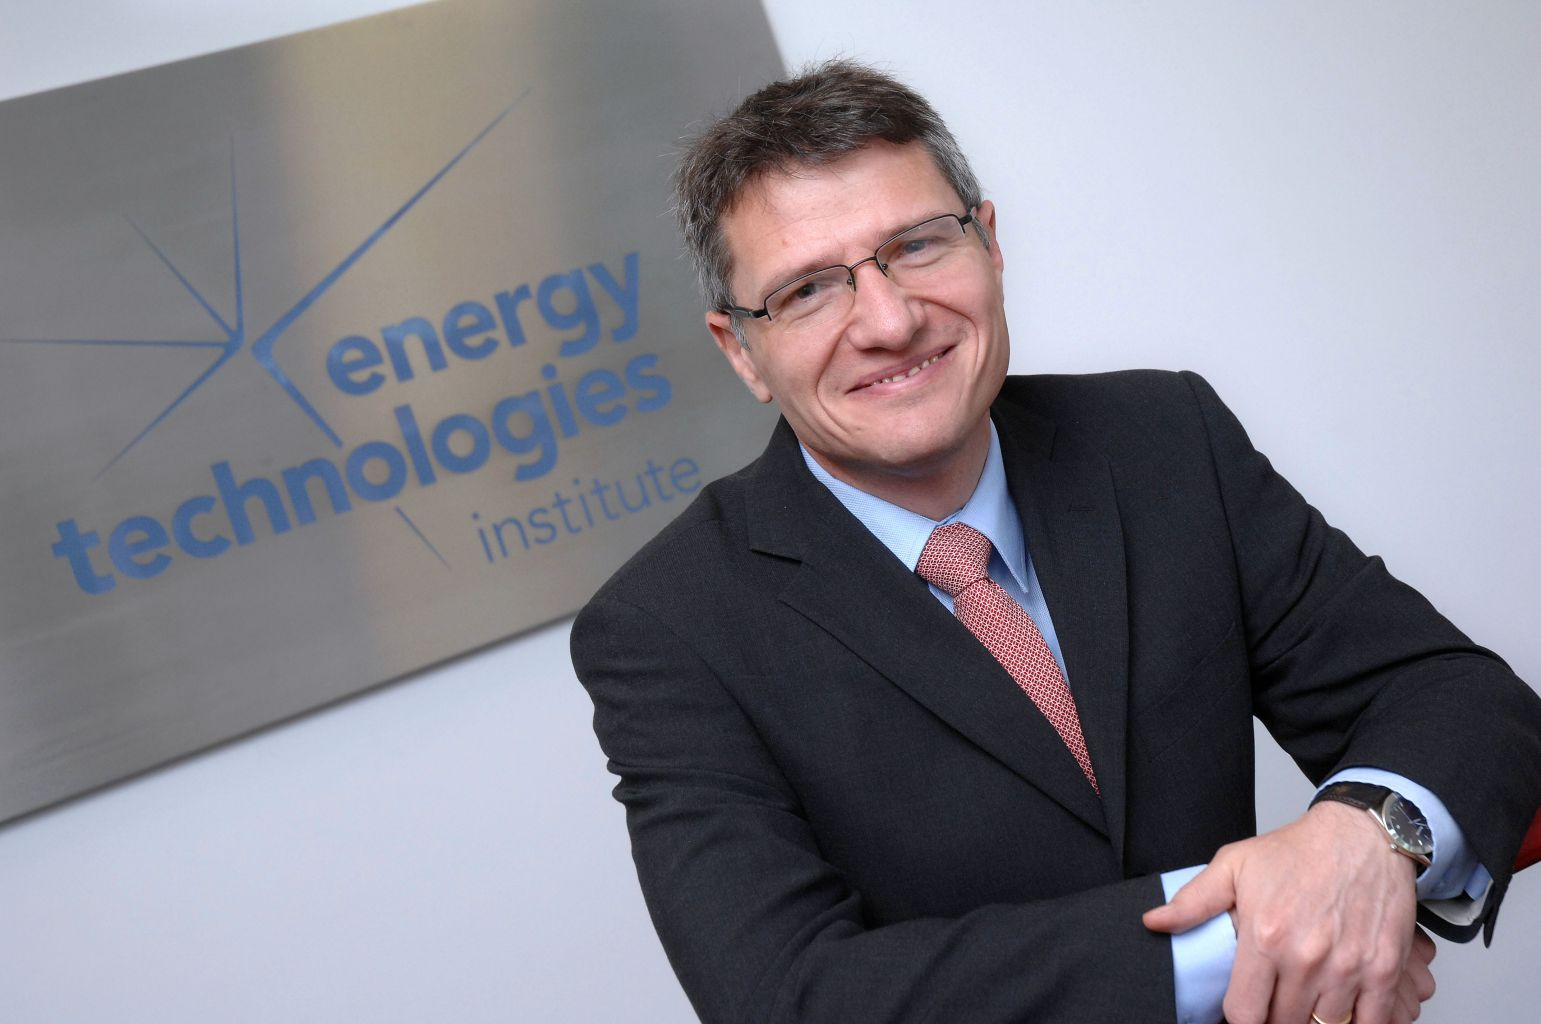 George Day presents on 'The System Wide Value and Impact of CCS' at All Energy